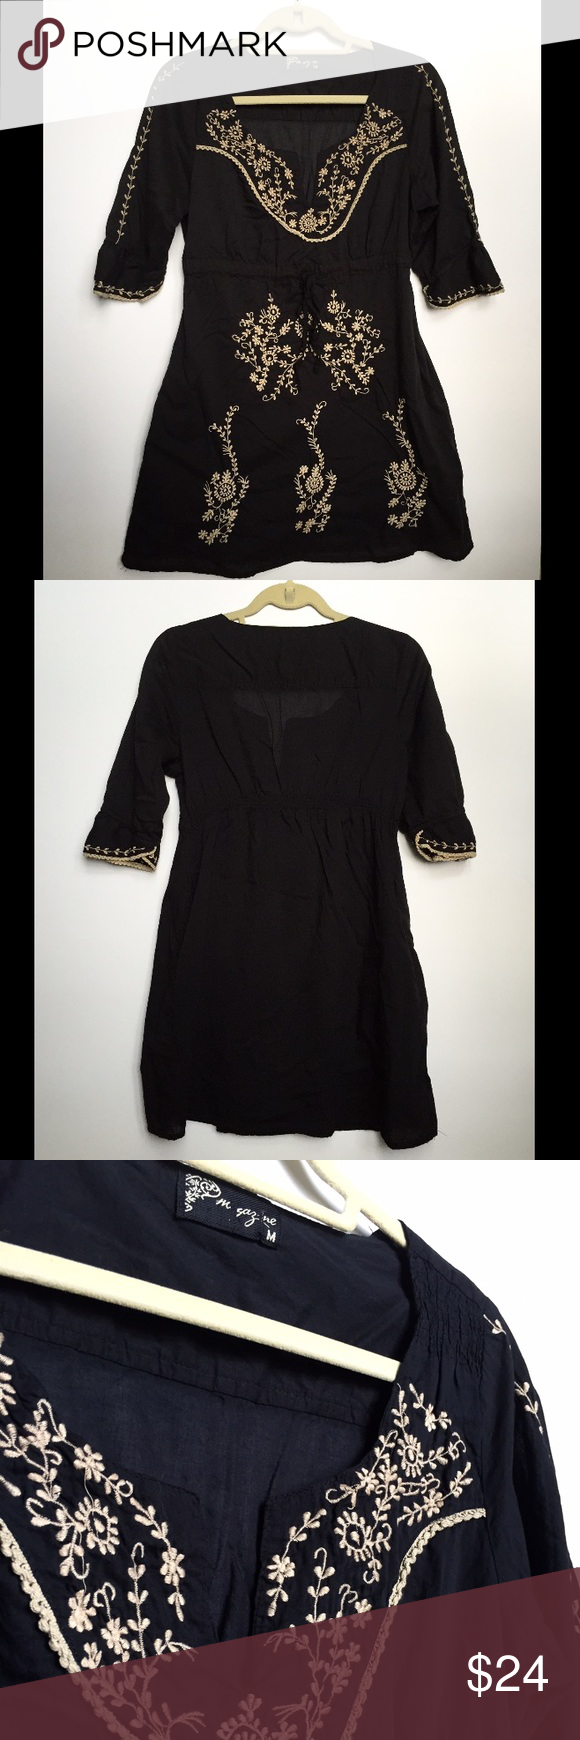 Black Mexican embroidered tunic Beautiful blousey embroidered tunic dress, machine wash delicate, never worn but washed for sale, 30 inches from shoulder to hem, 16 inches at waist laying flat, 20 inches at hip laying flat Dresses